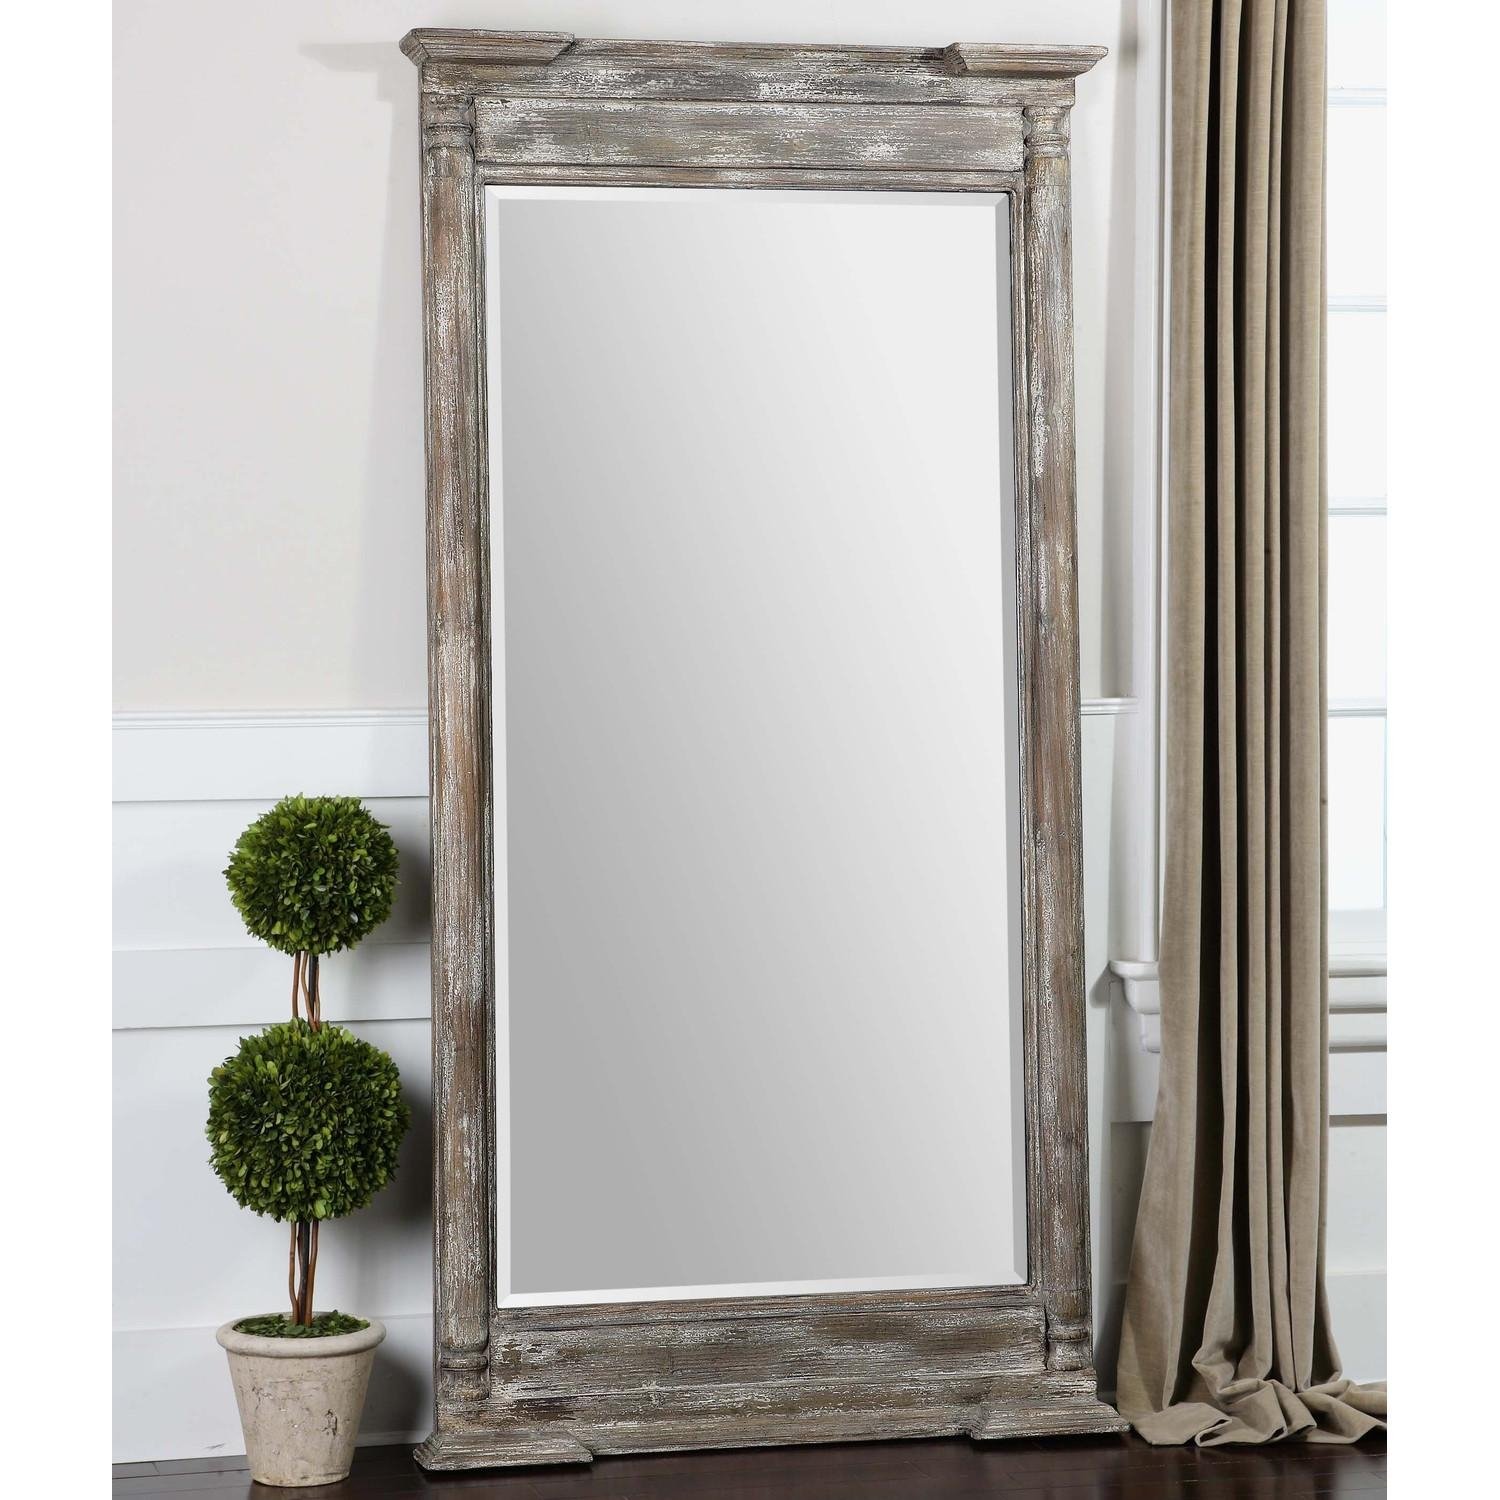 Decorative Full Length Mirror 10 Nice Decorating With Oversized In Huge Standing Mirror (Image 9 of 20)